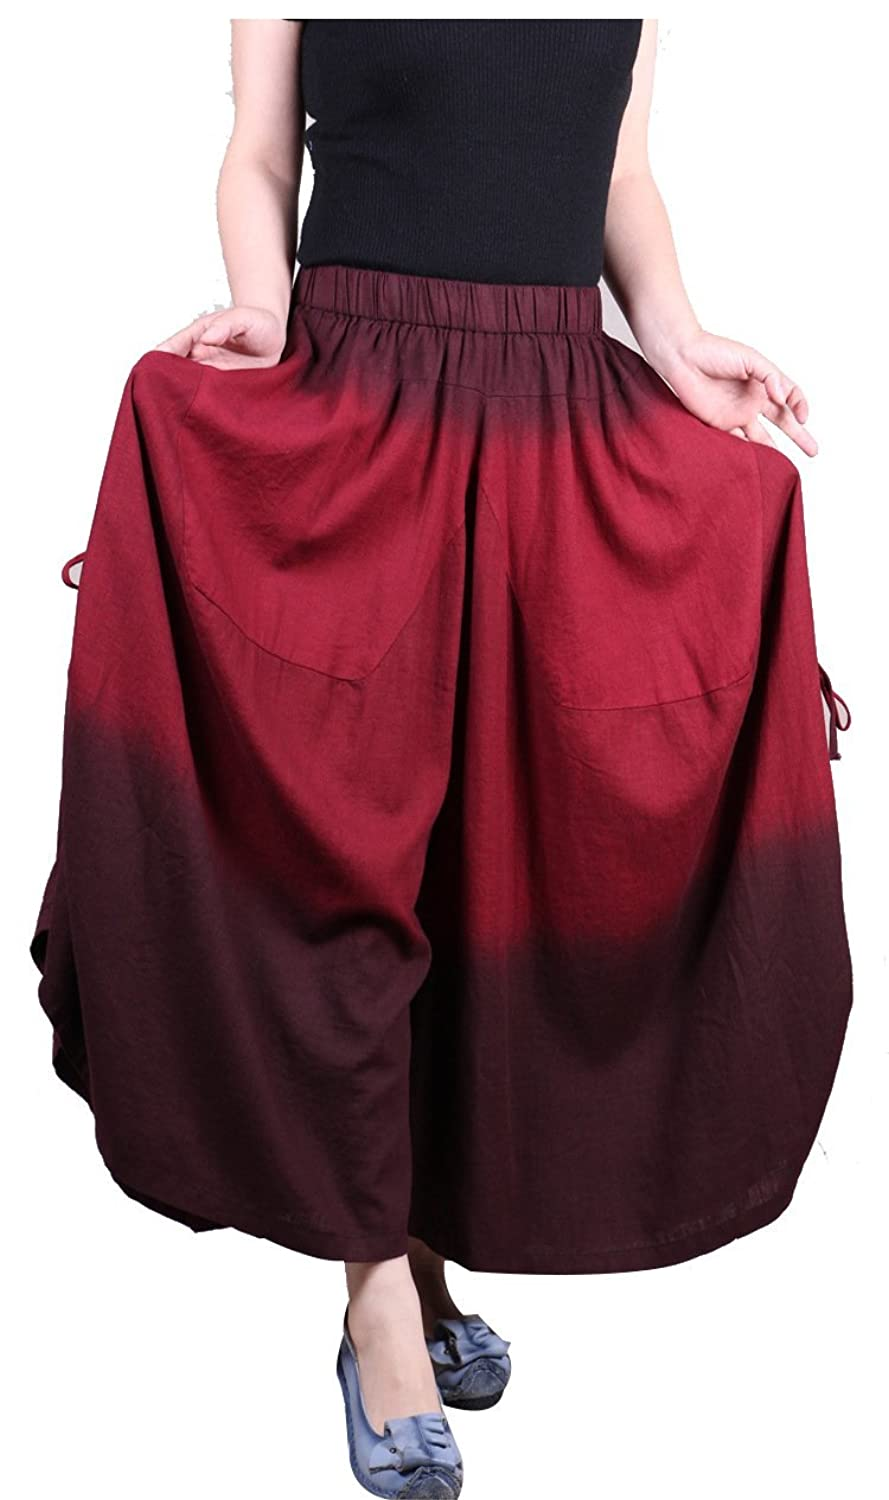 Ilishop Women's Culotte Wide Leg Pants Plus Size Pants